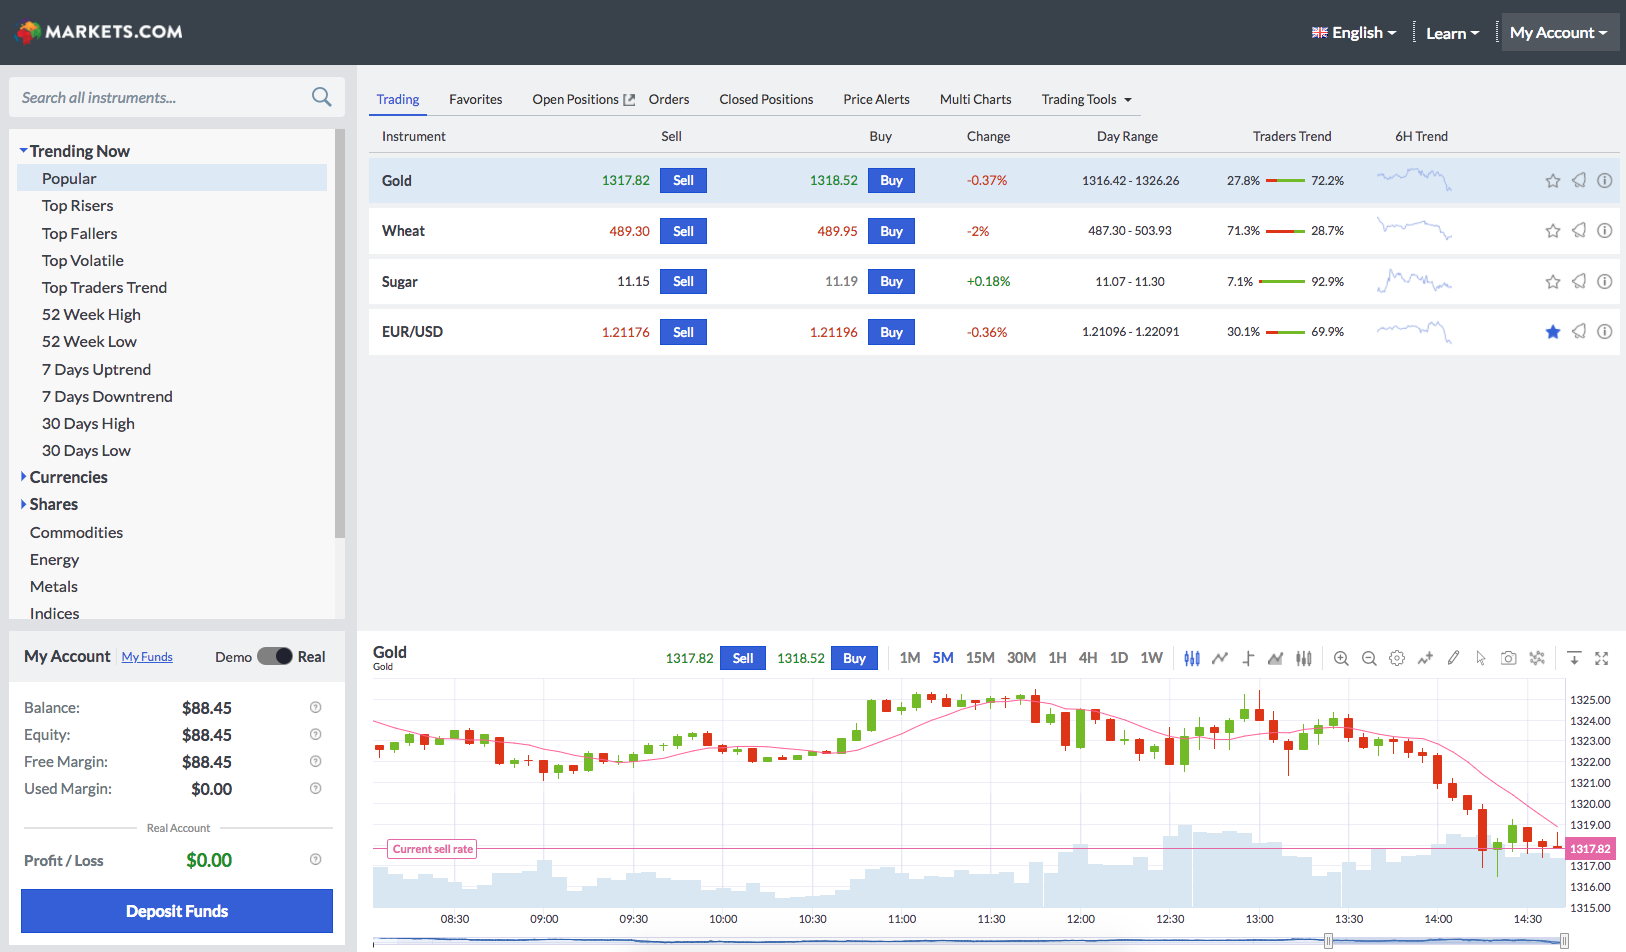 how-to-invest-in-bitcoin-markets.com-web-trading-platform